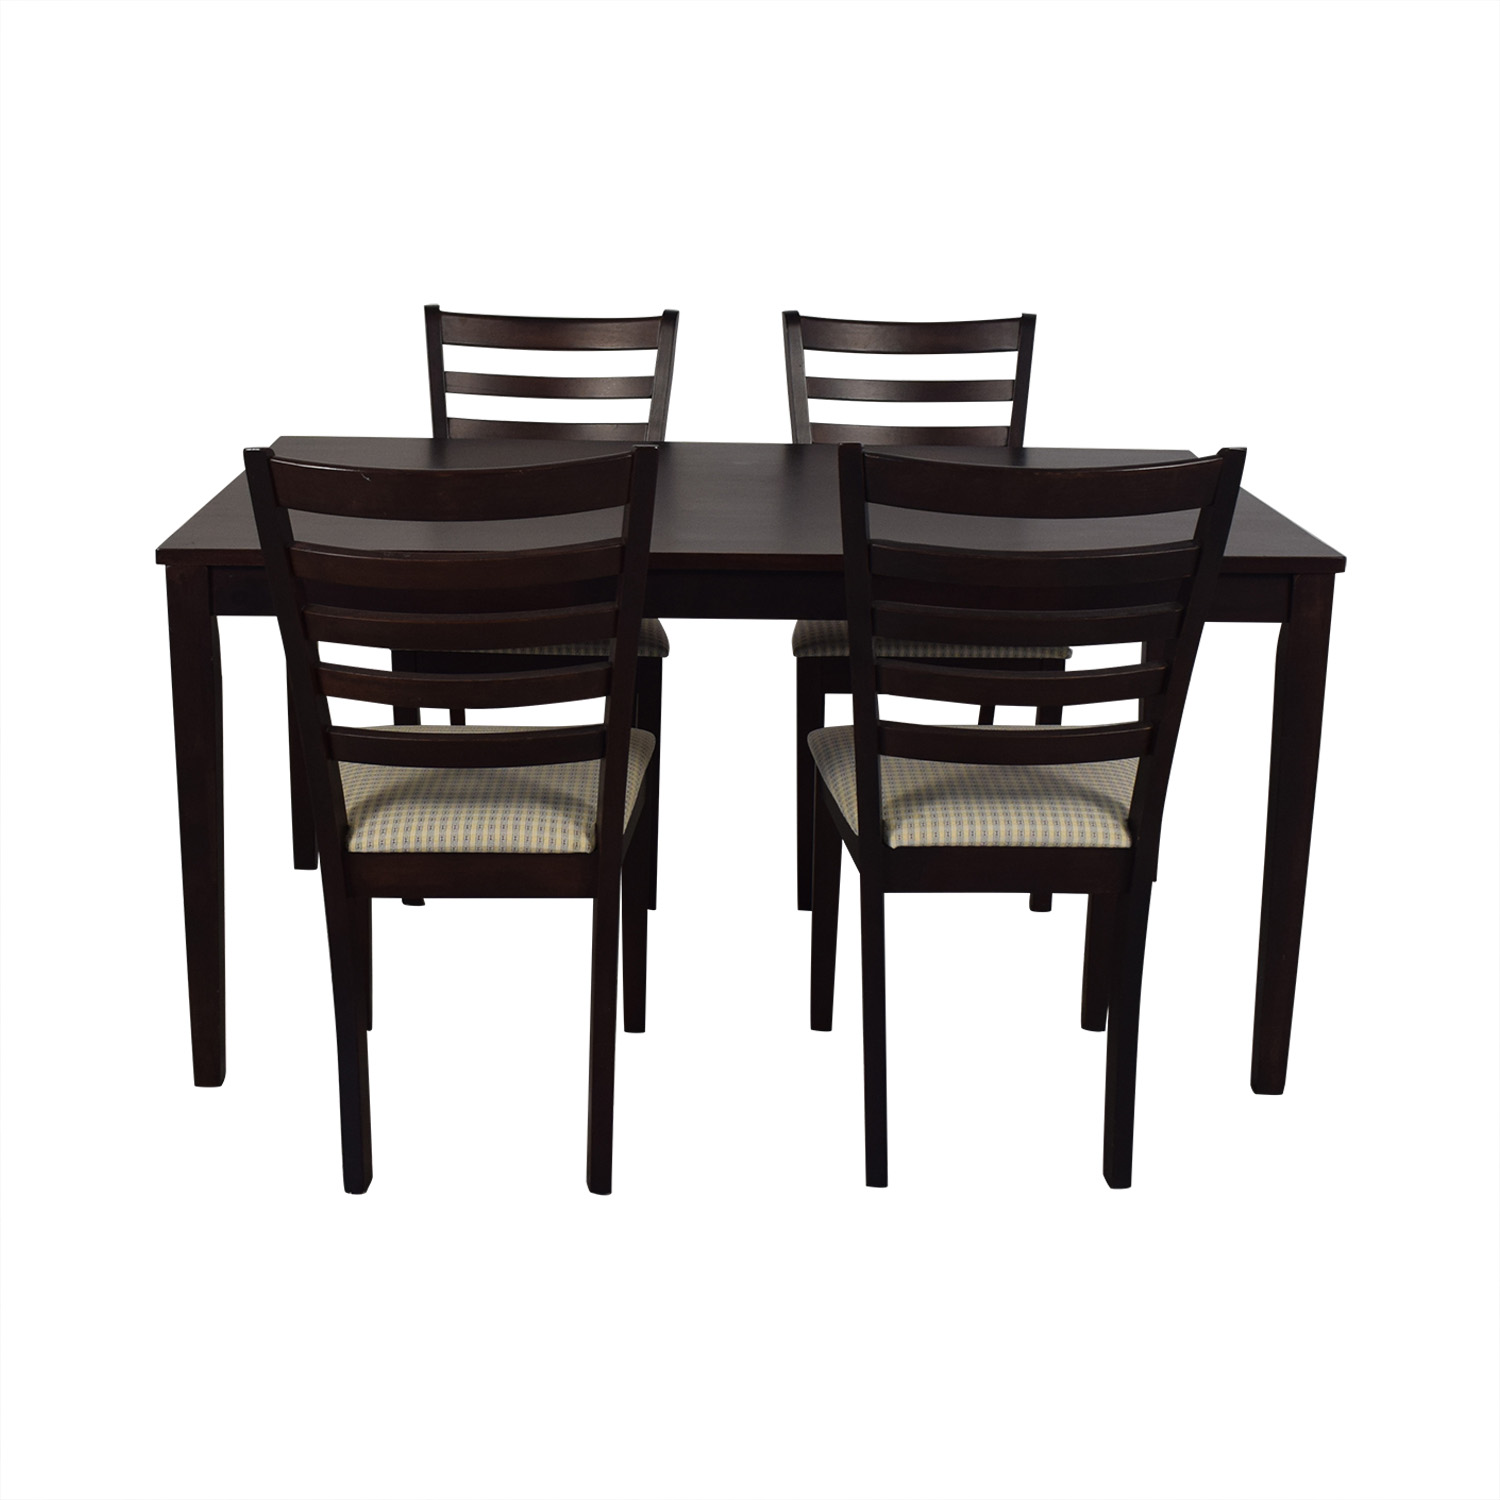 Dining Set with Beige Upholstered Chairs